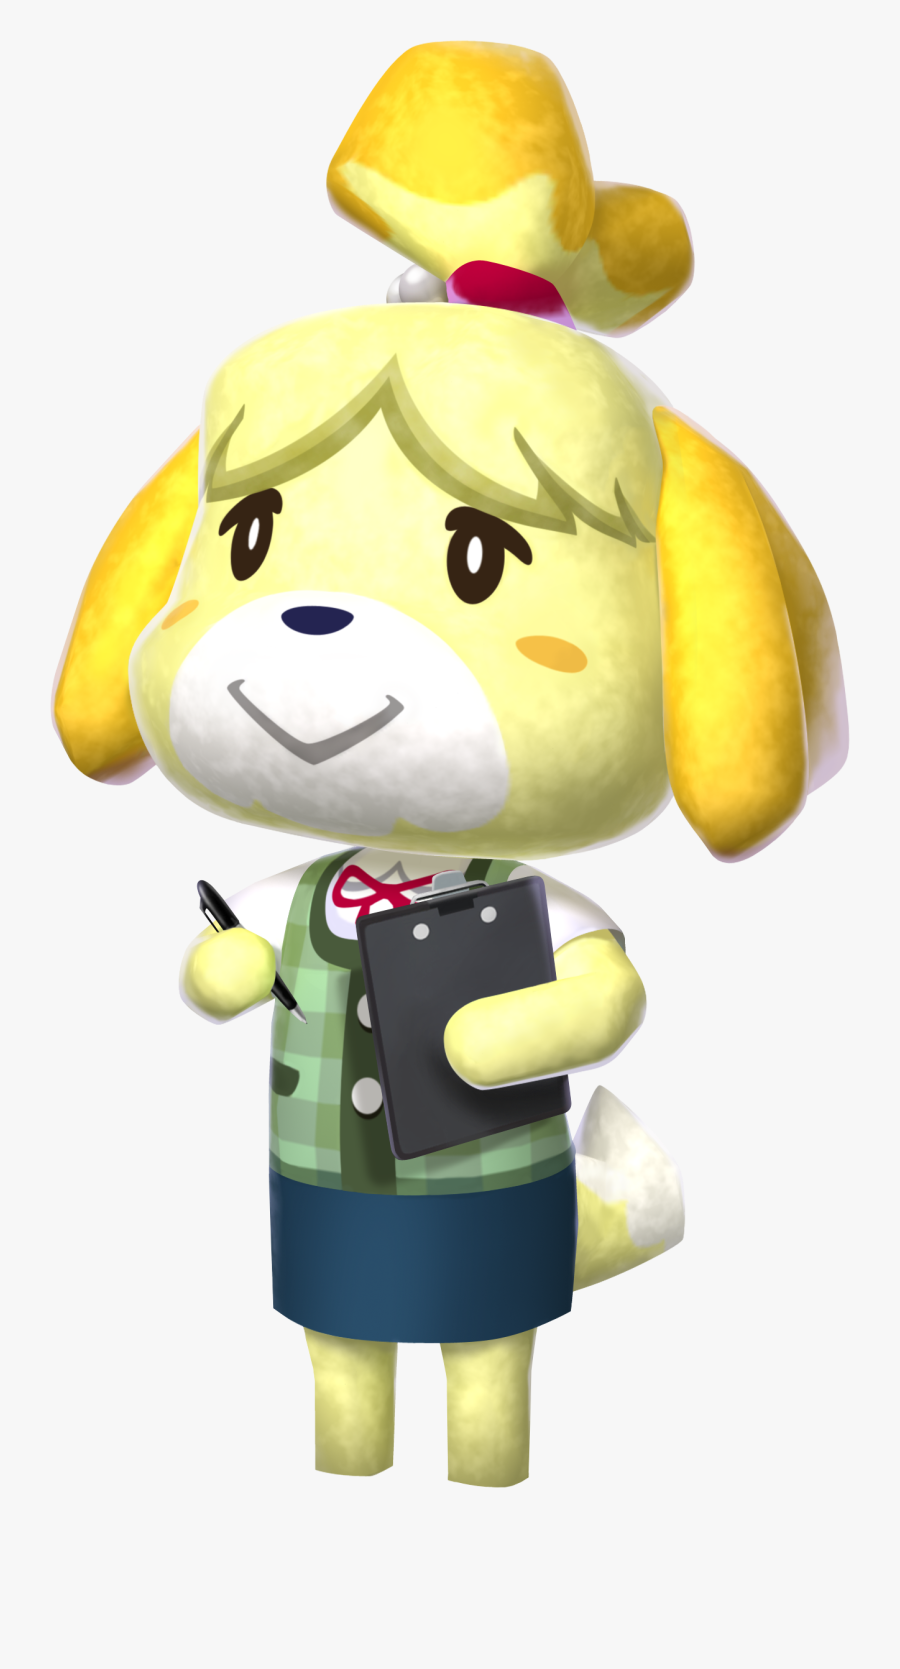 Clip Art Animal Crossing Png - Isabelle Animal Crossing, Transparent Clipart